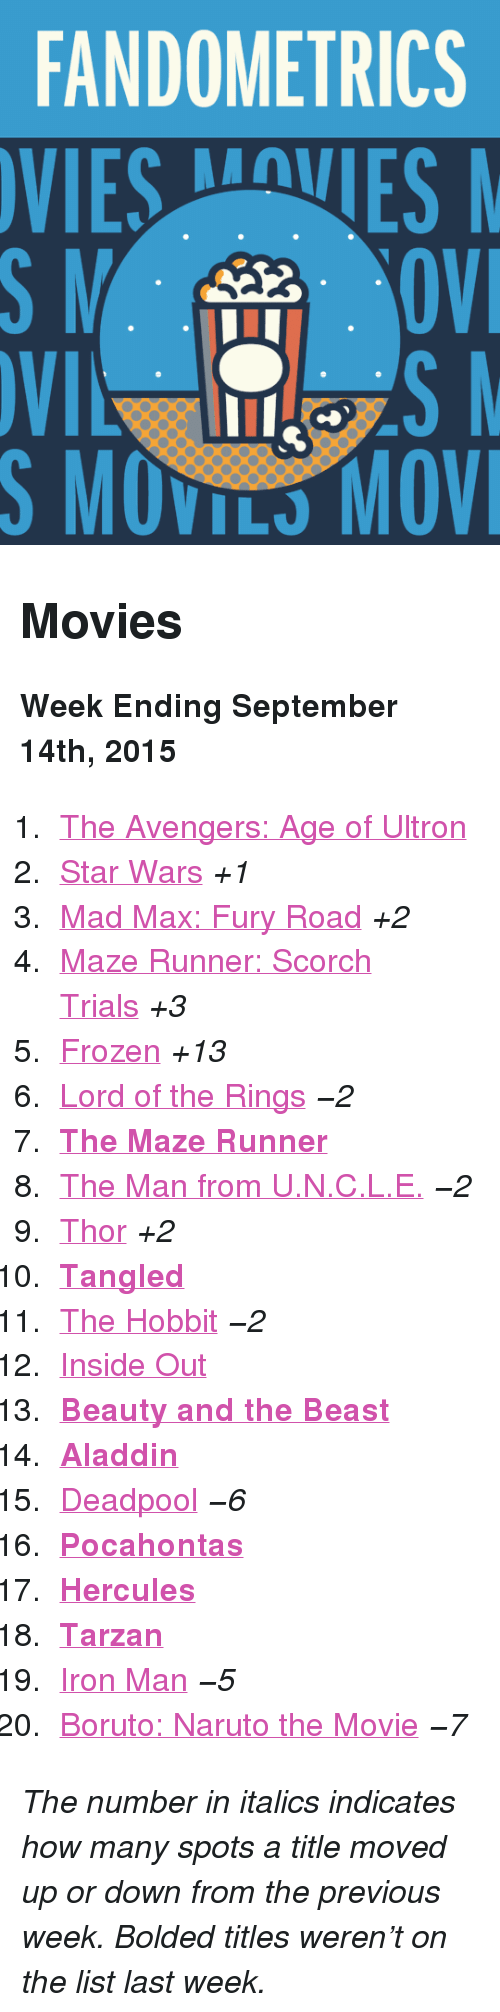 """Search: FANDOMETRICS  VIESVES  S MOVILS MOV <h2>Movies</h2><p><b>Week Ending September 14th, 2015</b></p><ol><li><a href=""""http://www.tumblr.com/search/age%20of%20ultron"""">The Avengers: Age of Ultron</a></li>  <li><a href=""""http://www.tumblr.com/search/star%20wars"""">Star Wars</a><i>+1</i></li>  <li><a href=""""http://www.tumblr.com/search/mad%20max"""">Mad Max: Fury Road</a><i>+2</i></li>  <li><a href=""""http://www.tumblr.com/search/the%20scorch%20trials"""">Maze Runner: Scorch Trials</a><i>+3</i></li>  <li><a href=""""http://www.tumblr.com/search/frozen"""">Frozen</a><i>+13</i></li>  <li><a href=""""http://www.tumblr.com/search/lotr"""">Lord of the Rings</a><i>−2</i></li>  <li><a href=""""http://www.tumblr.com/search/the%20maze%20runner""""><b>The Maze Runner</b></a></li>  <li><a href=""""http://www.tumblr.com/search/the%20man%20from%20uncle"""">The Man from U.N.C.L.E.</a><i>−2</i></li>  <li><a href=""""http://www.tumblr.com/search/thor"""">Thor</a><i>+2</i></li>  <li><a href=""""http://www.tumblr.com/search/tangled""""><b>Tangled</b></a></li>  <li><a href=""""http://www.tumblr.com/search/the%20hobbit"""">The Hobbit</a><i>−2</i></li>  <li><a href=""""http://www.tumblr.com/search/inside%20out"""">Inside Out</a></li>  <li><a href=""""http://www.tumblr.com/search/beauty%20and%20the%20beast""""><b>Beauty and the Beast</b></a></li>  <li><a href=""""http://www.tumblr.com/search/aladdin""""><b>Aladdin</b></a></li>  <li><a href=""""http://www.tumblr.com/search/deadpool"""">Deadpool</a><i>−6</i></li>  <li><a href=""""http://www.tumblr.com/search/pocahontas""""><b>Pocahontas</b></a></li>  <li><a href=""""http://www.tumblr.com/search/hercules""""><b>Hercules</b></a></li>  <li><a href=""""http://www.tumblr.com/search/tarzan""""><b>Tarzan</b></a></li>  <li><a href=""""http://www.tumblr.com/search/iron%20man"""">Iron Man</a><i>−5</i></li>  <li><a href=""""http://www.tumblr.com/search/boruto%20the%20movie"""">Boruto: Naruto the Movie</a><i>−7</i></li></ol><p><i>The number in italics indicates how many spots a title moved up or down from the previous week. Bolded titles weren't on the list"""